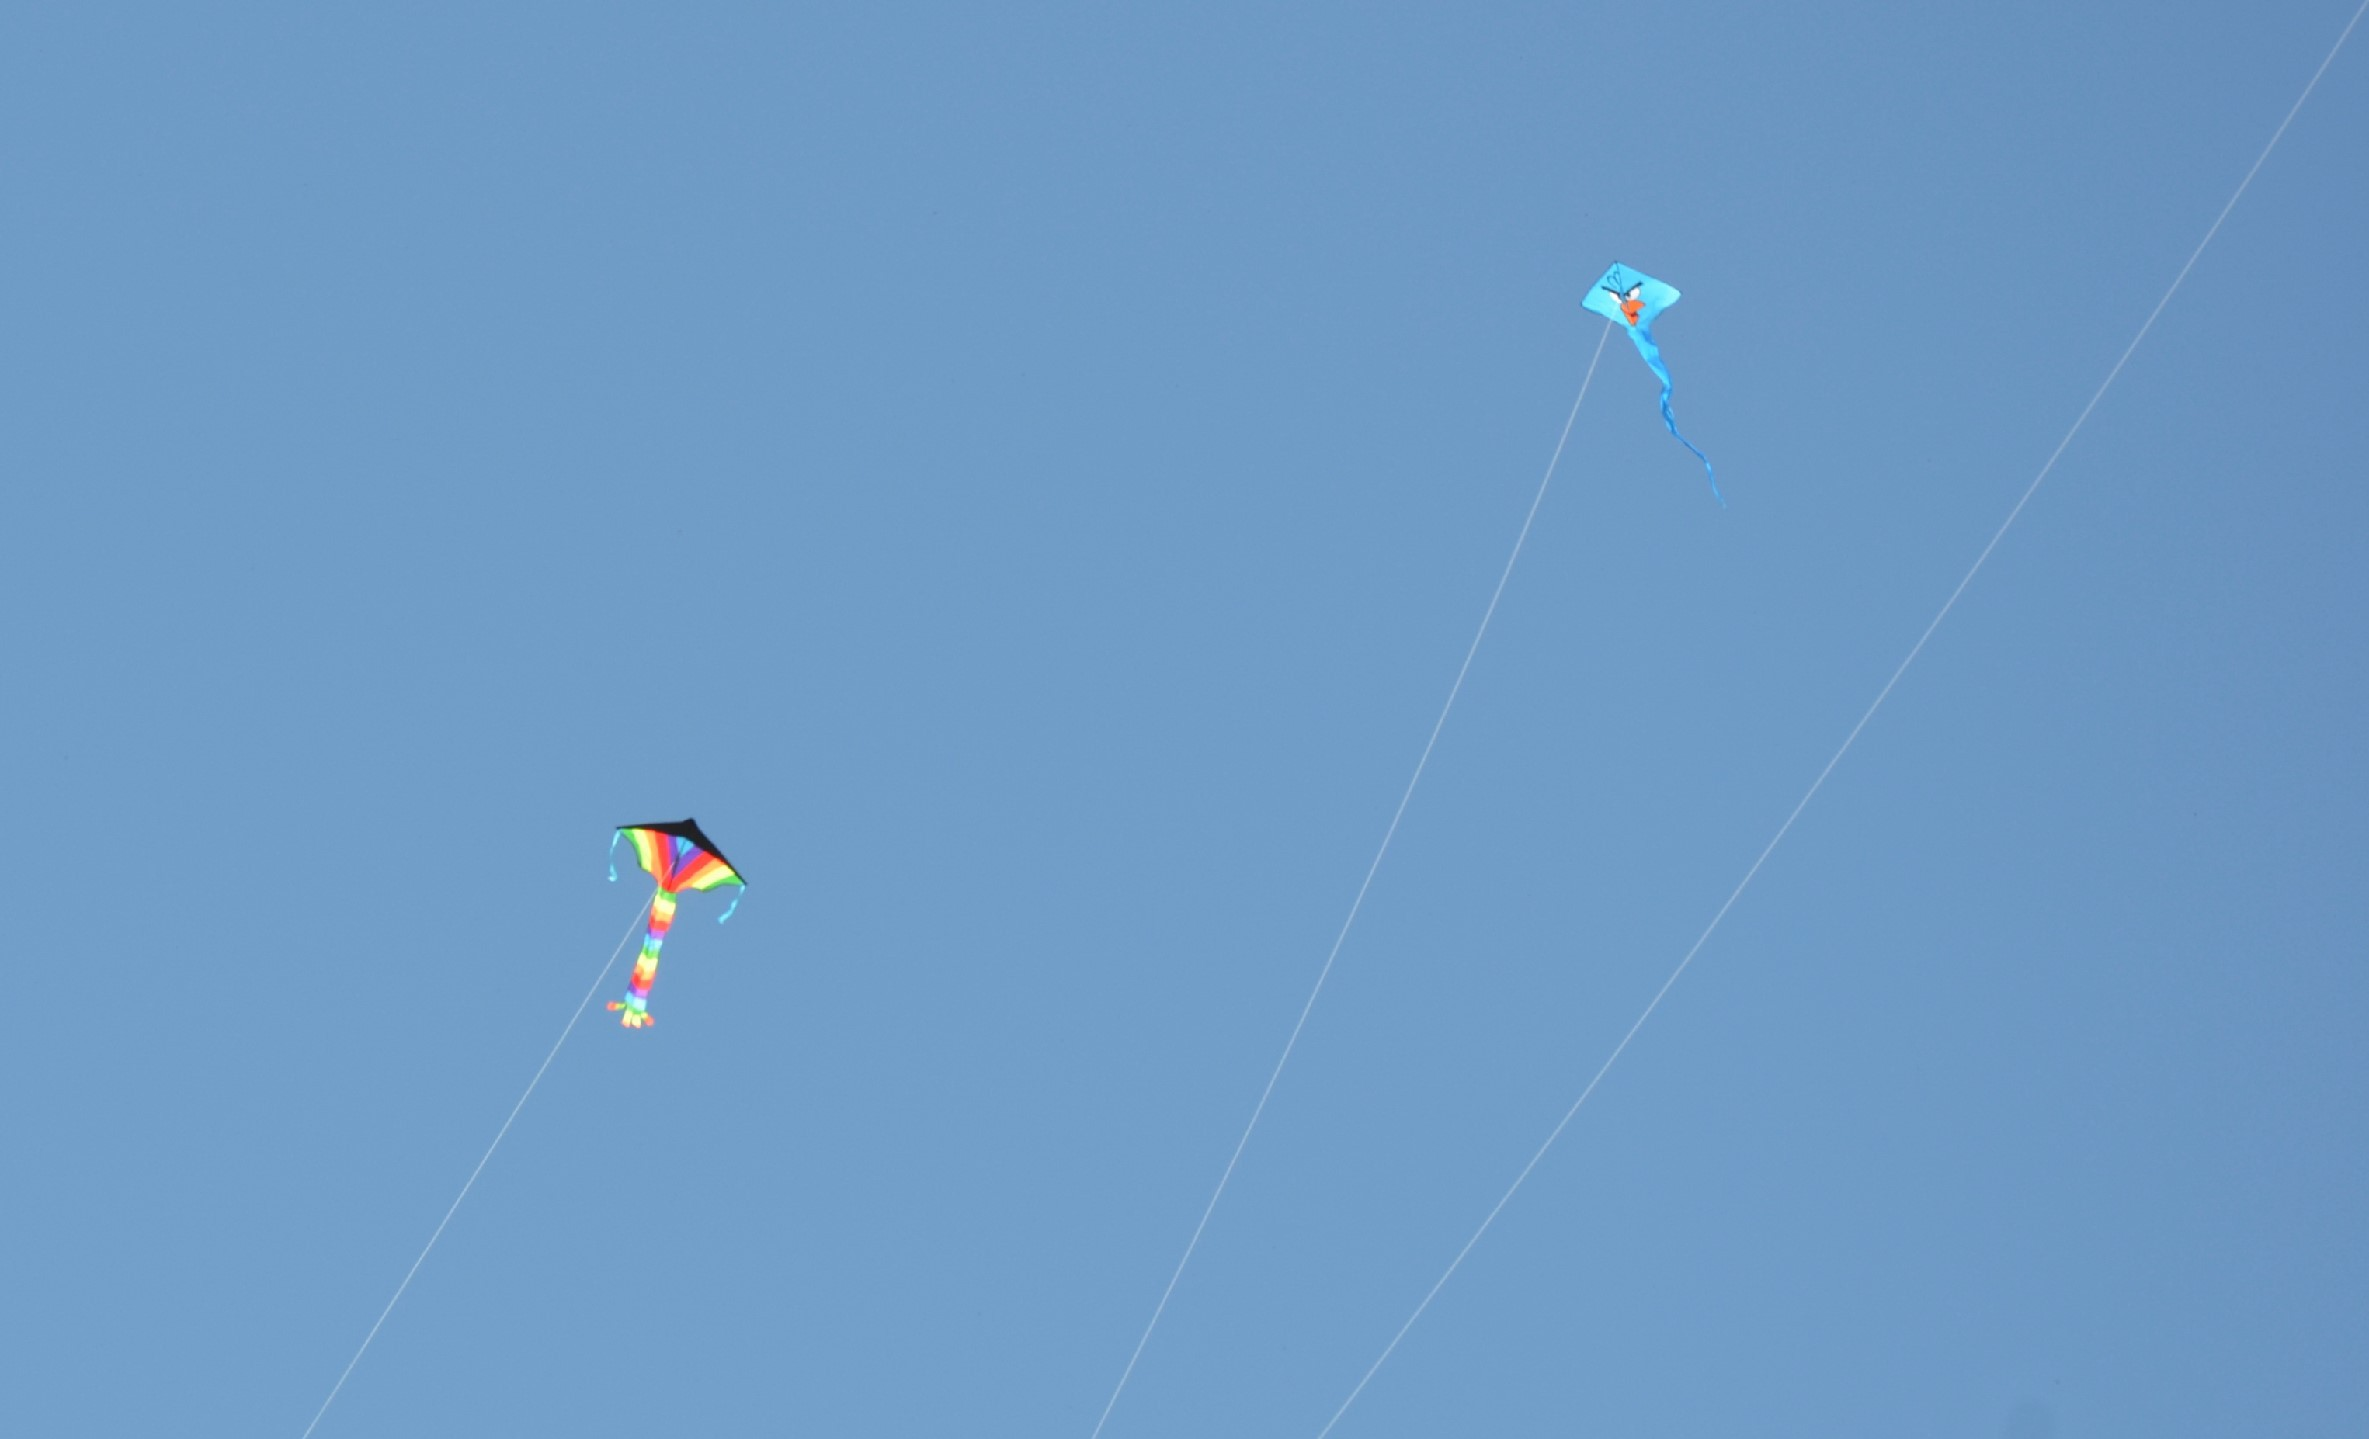 attention getter flying a kite made Kitemaker profile : the big bol because it is such an 'attention getter' and it's my the dragonfly kite made for paul what kite flying experience is your.